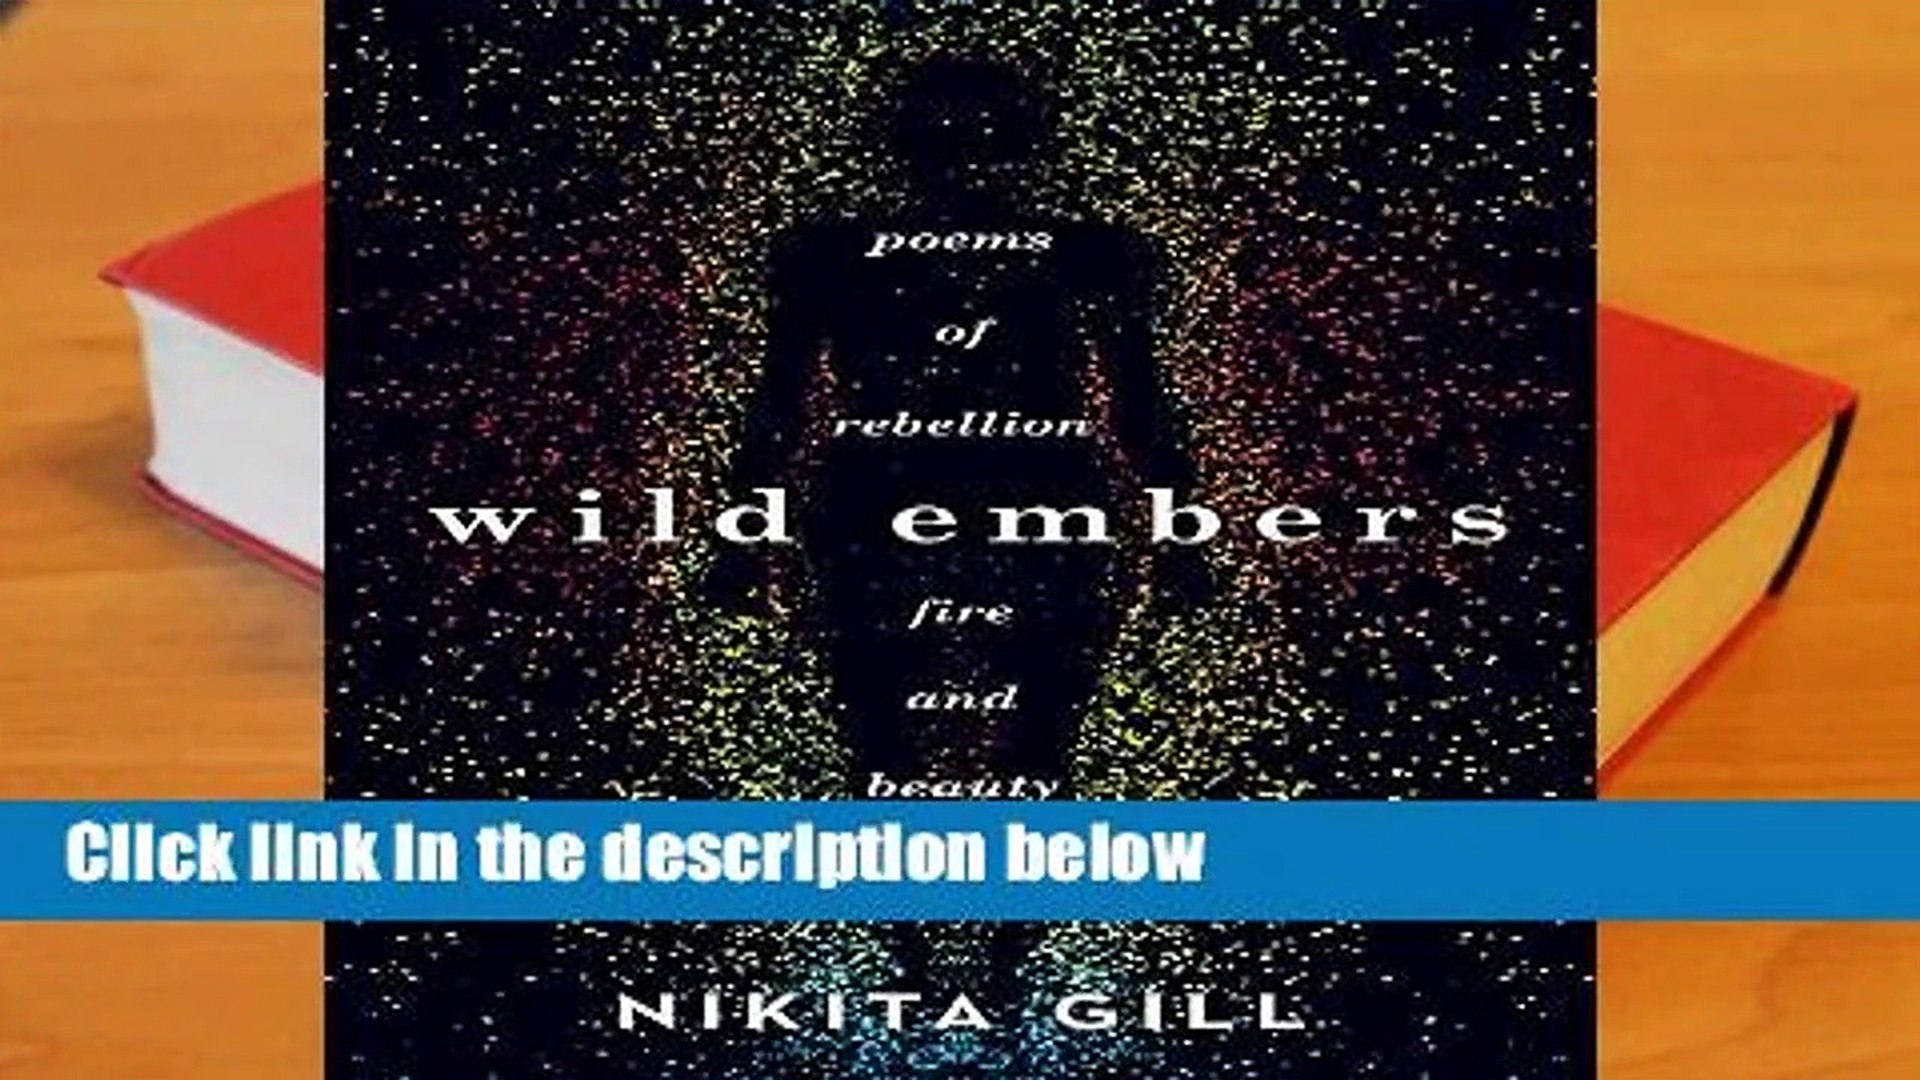 Full E-book  Wild Embers: Poems of rebellion, fire and beauty  Review